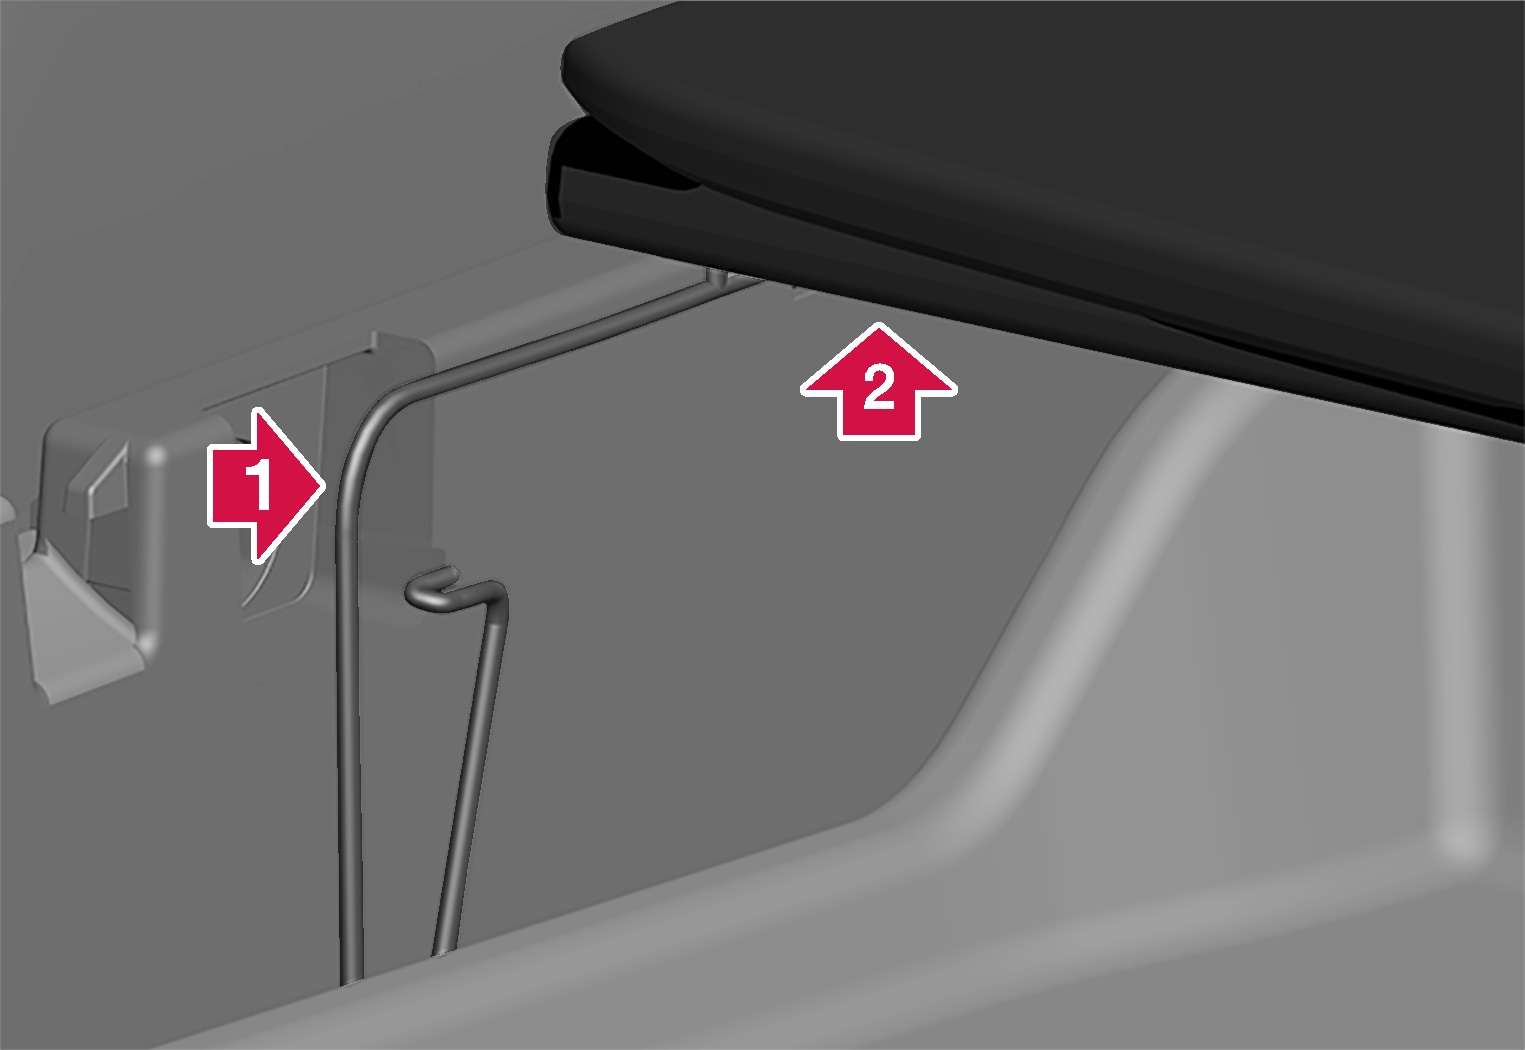 P6-1817-XC40-Foldable loadfloor removal step 1